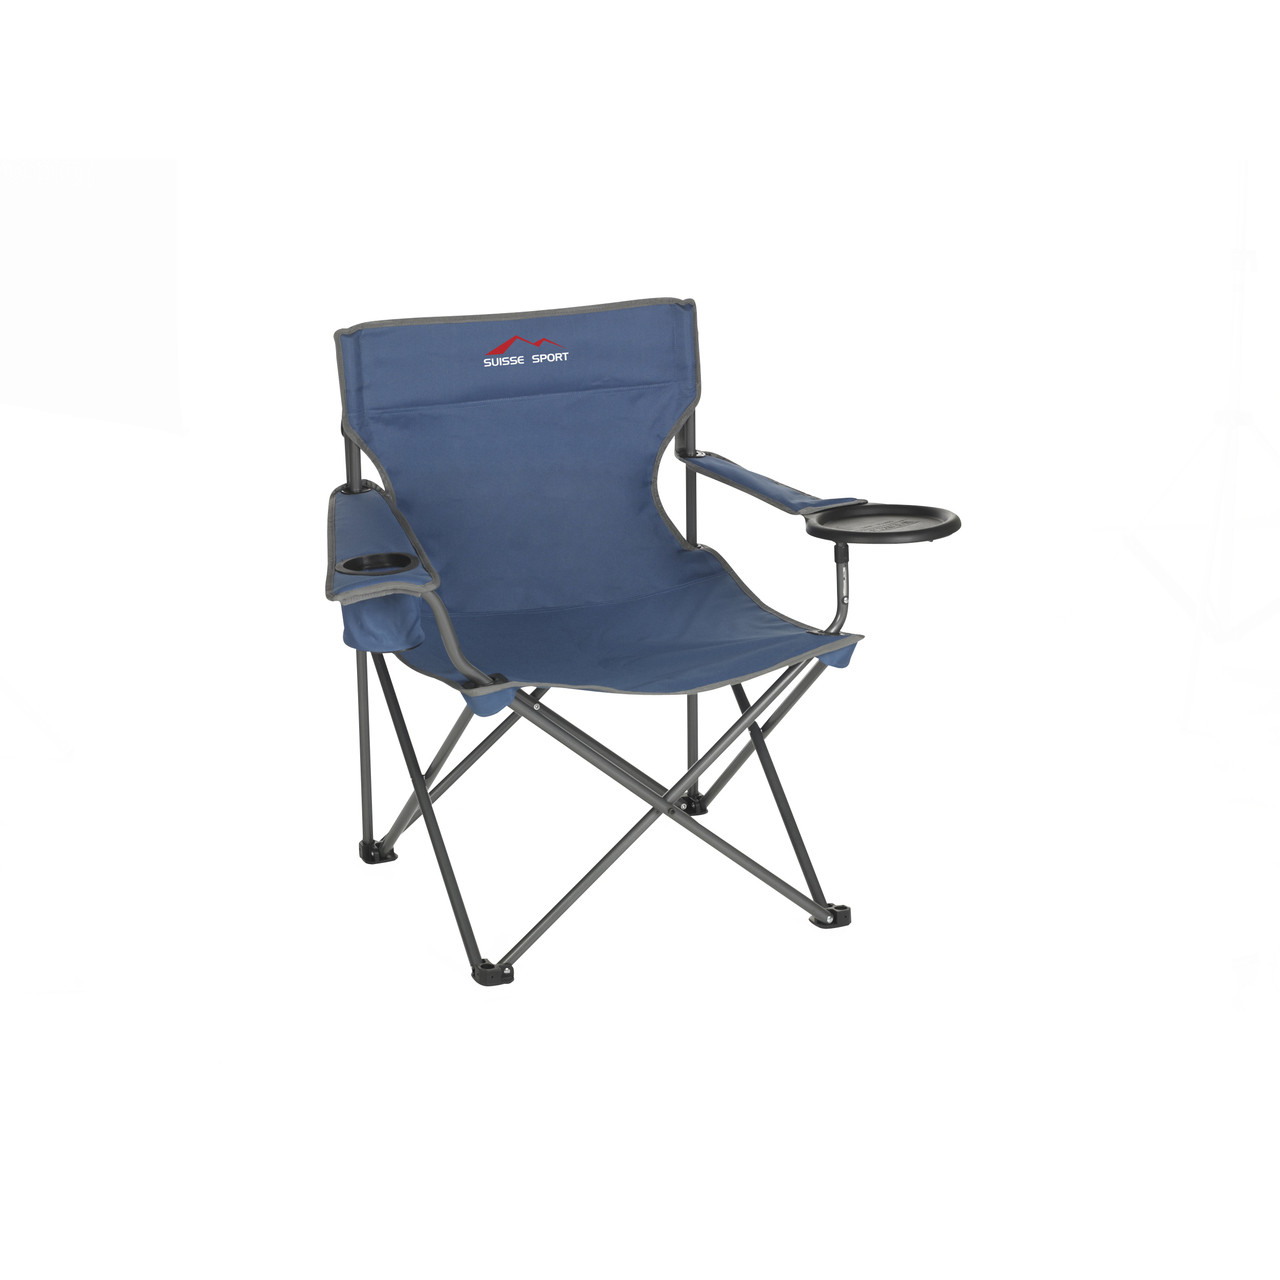 Wenzel Banquet Chair XL, blue and gray, sitting down extended with the plate holder down